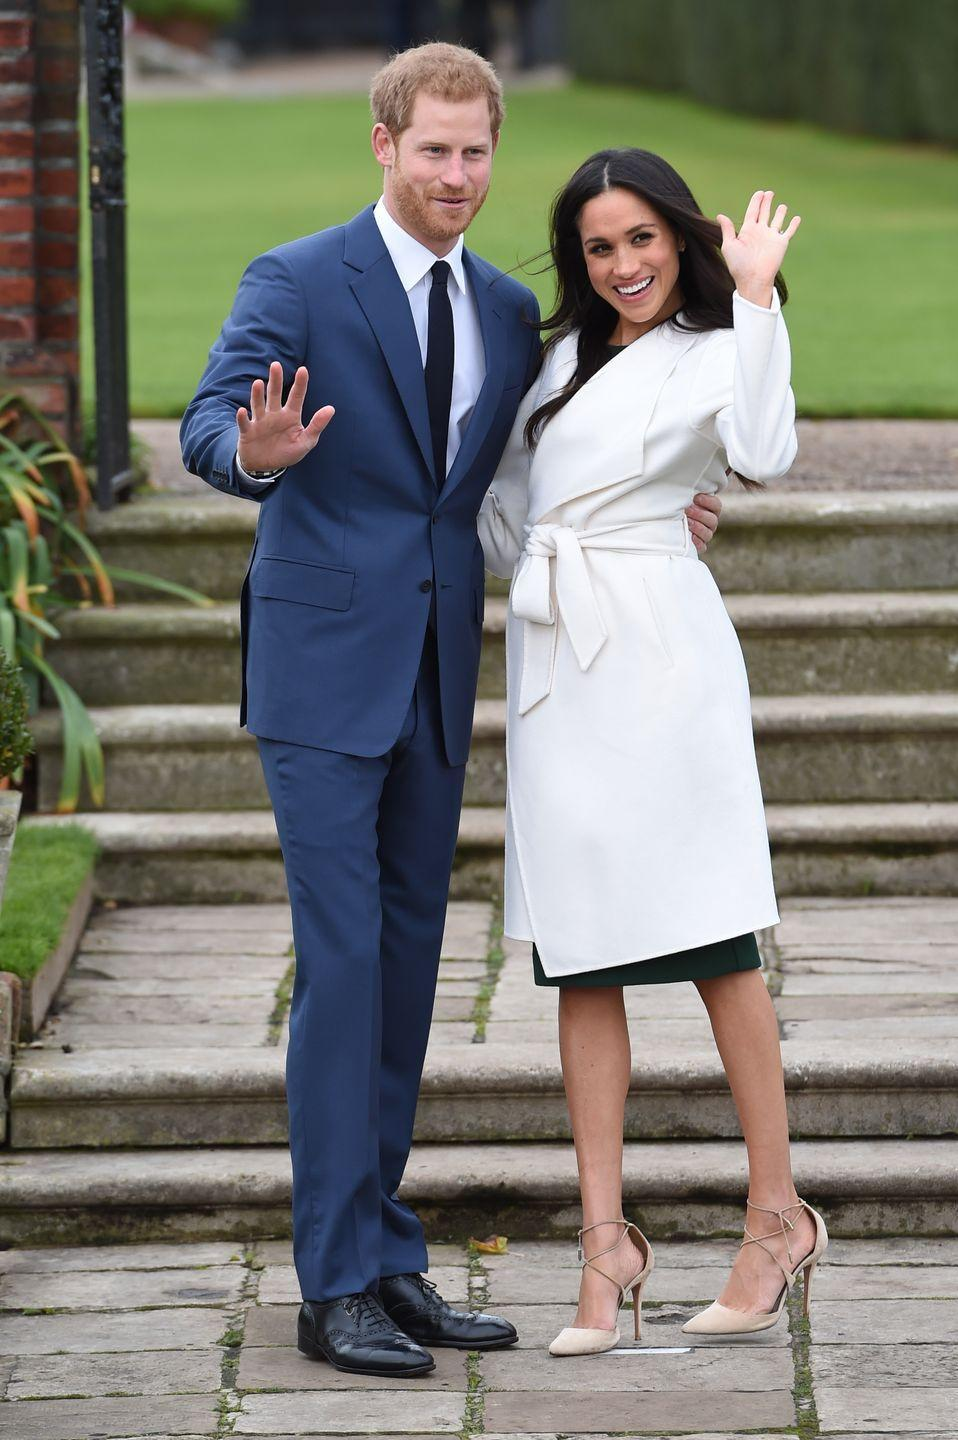 <p>According to fashion expert Harriet Davey, going up a shoe size is a style hack employed by many celebrities. It looks like Meghan used this trick in this instance, as there's lots of room behind her heel in these strappy Aquazzura pumps.</p>